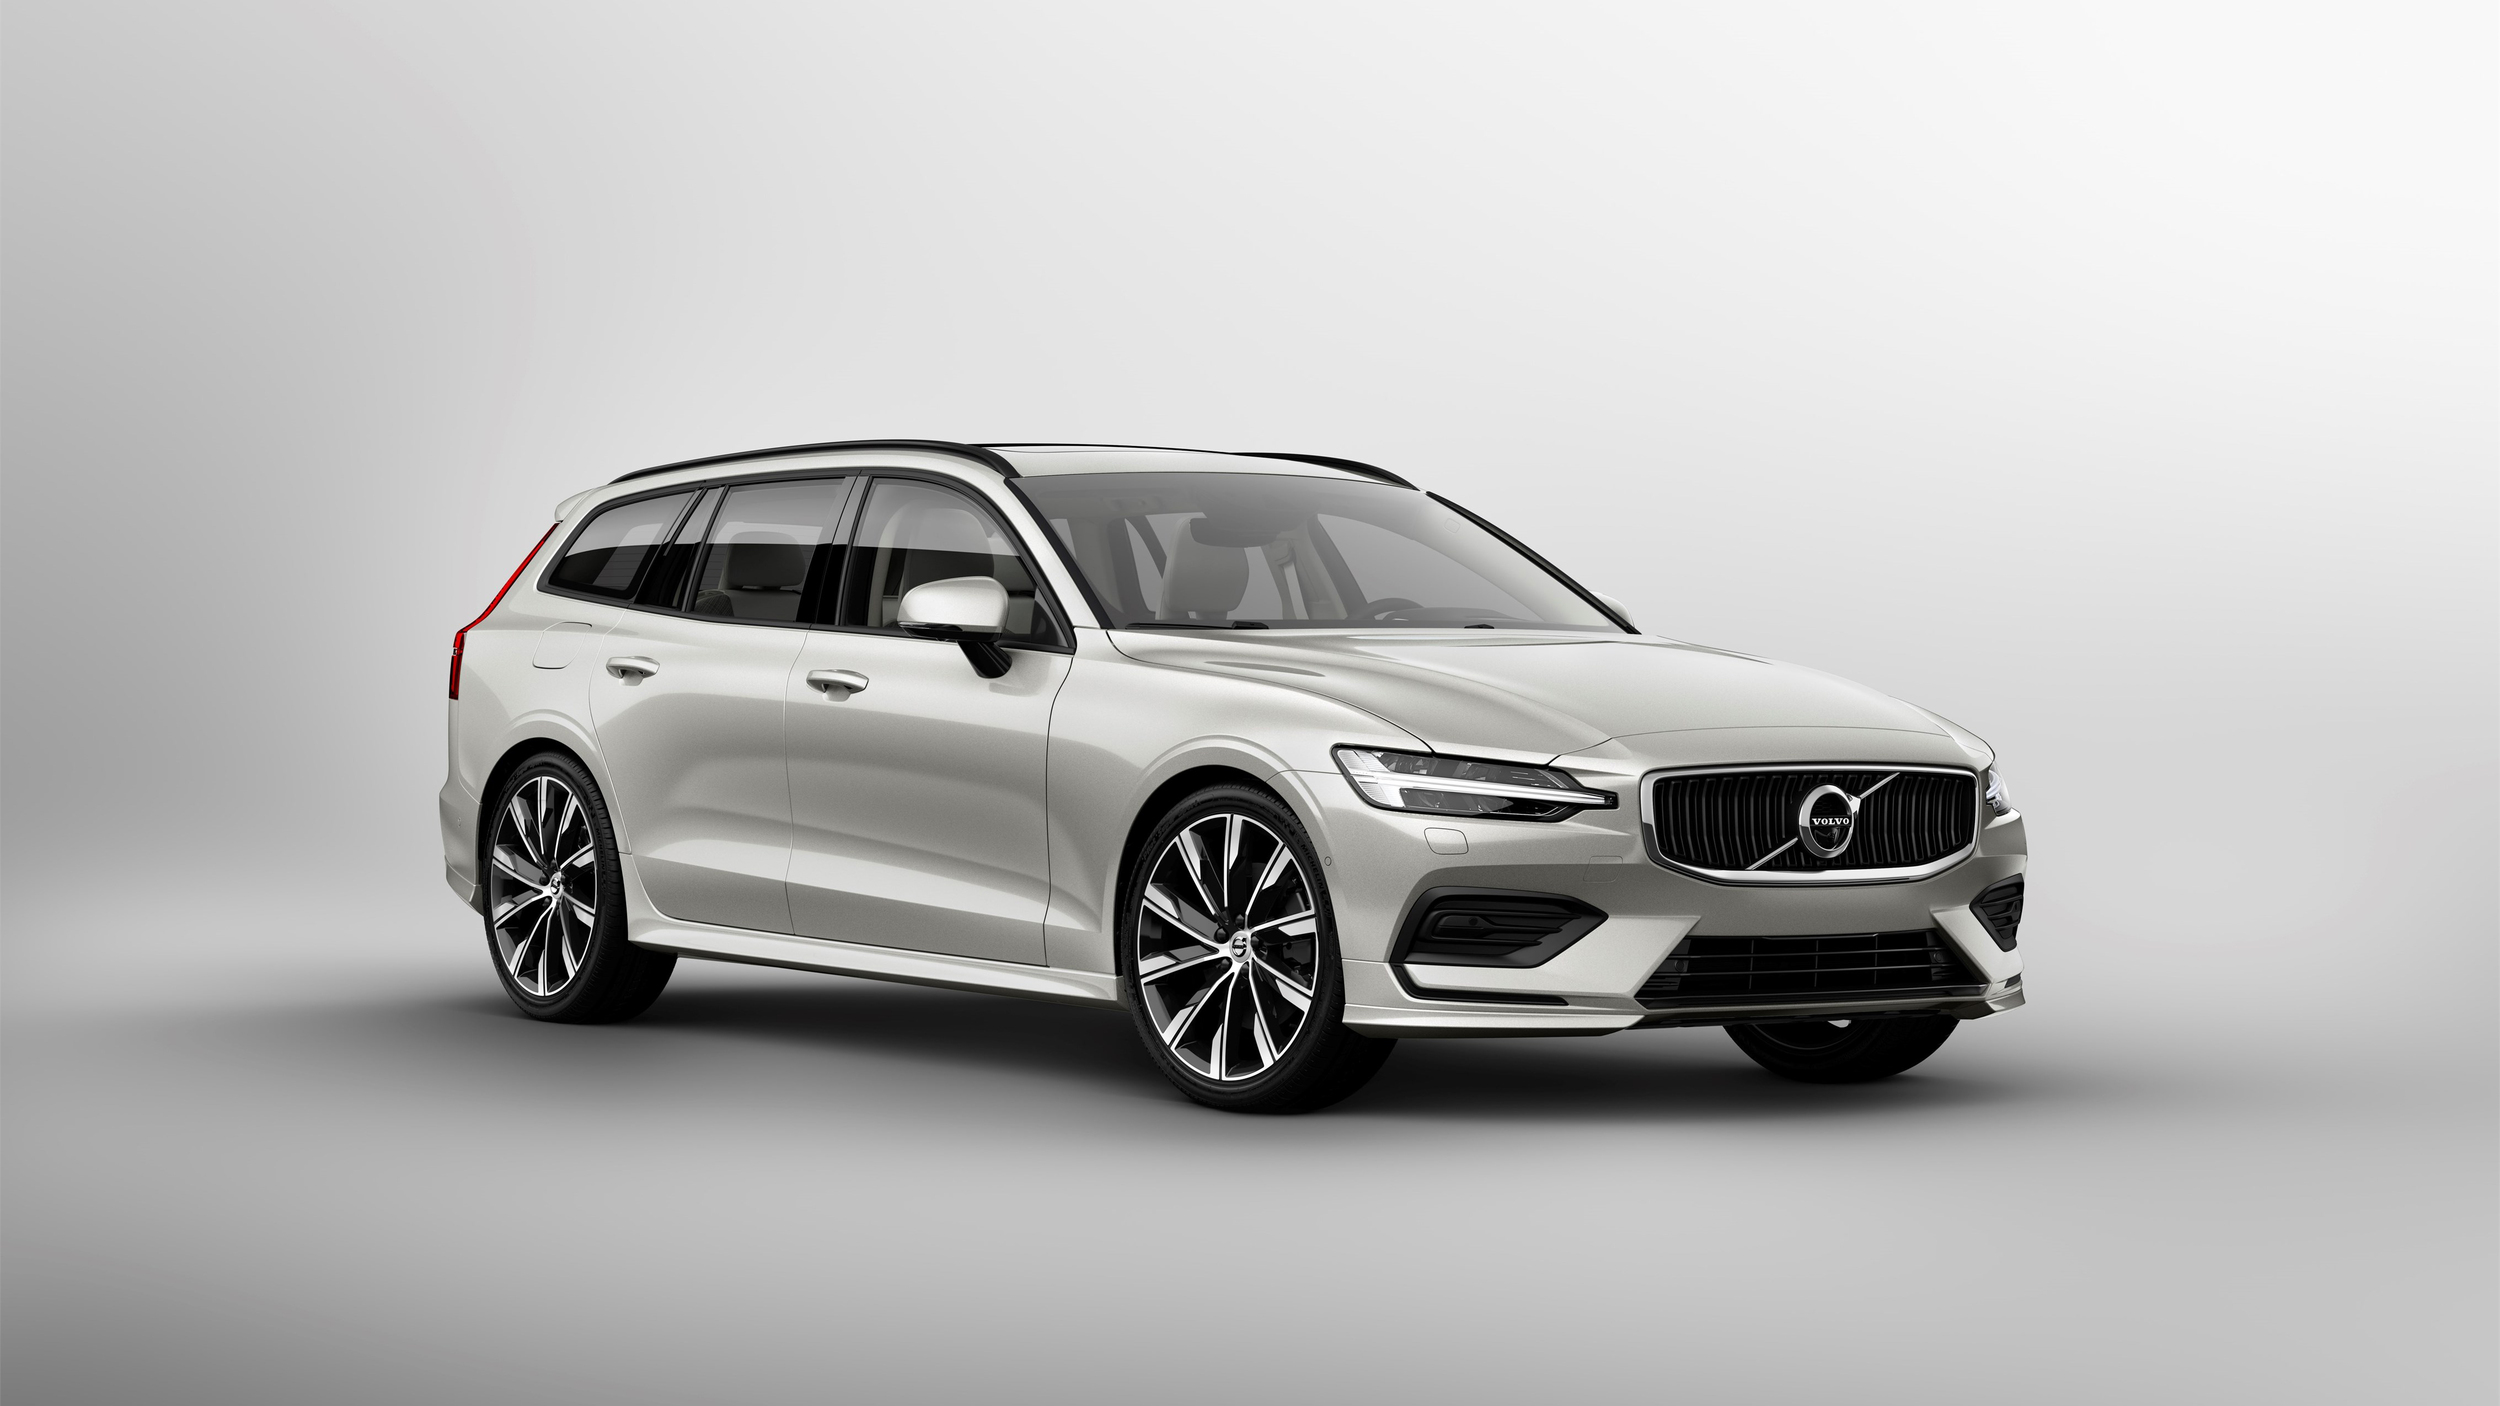 2019 Volvo XC70 Crossover SUV Review >> 2019 Volvo V60 Momentum Quick Spin Review And Rating Autoblog